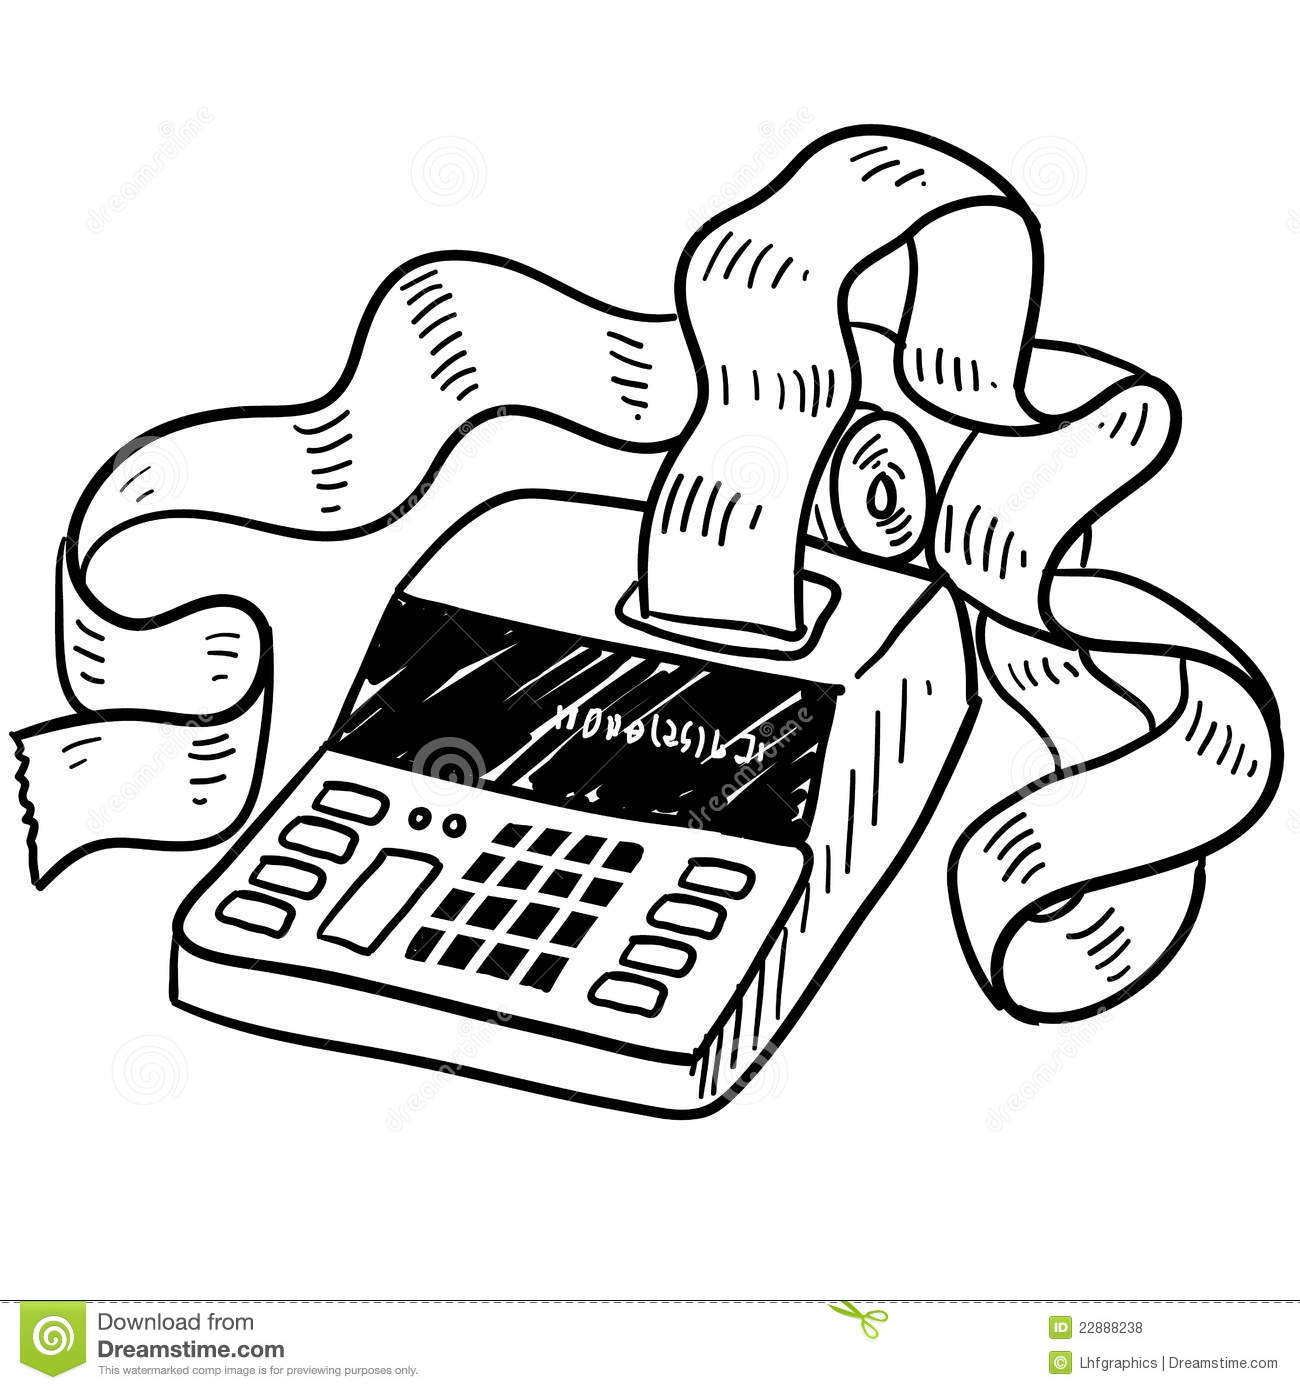 Croquis De Machine A Calculer Illustration Stock